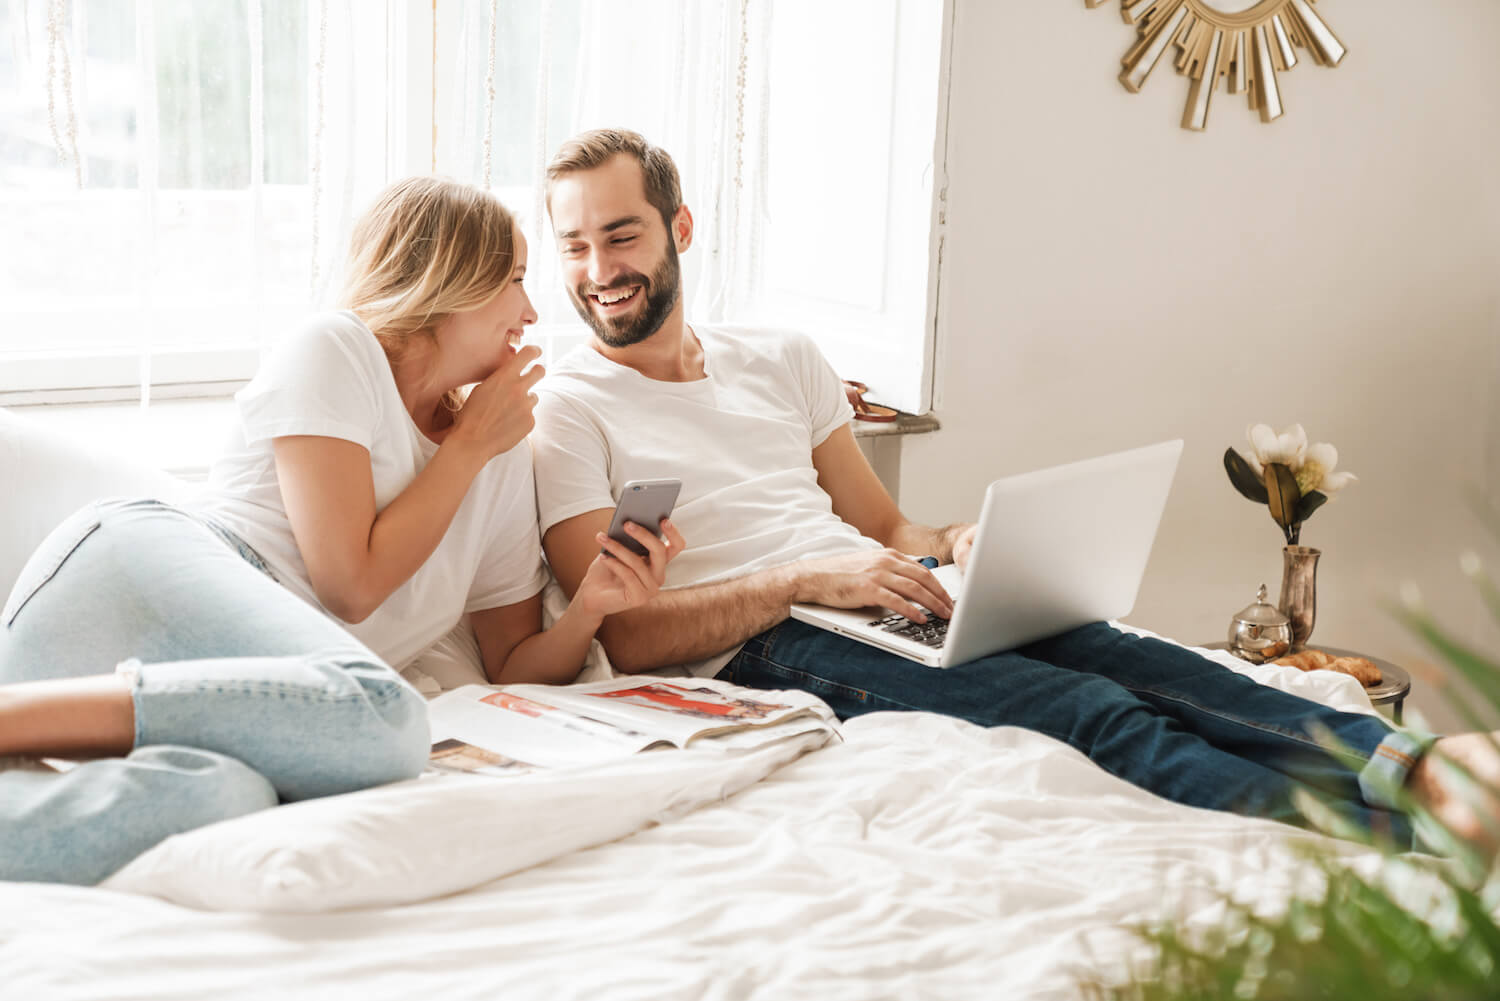 Couple sitting on bed with laptop smiling at each other